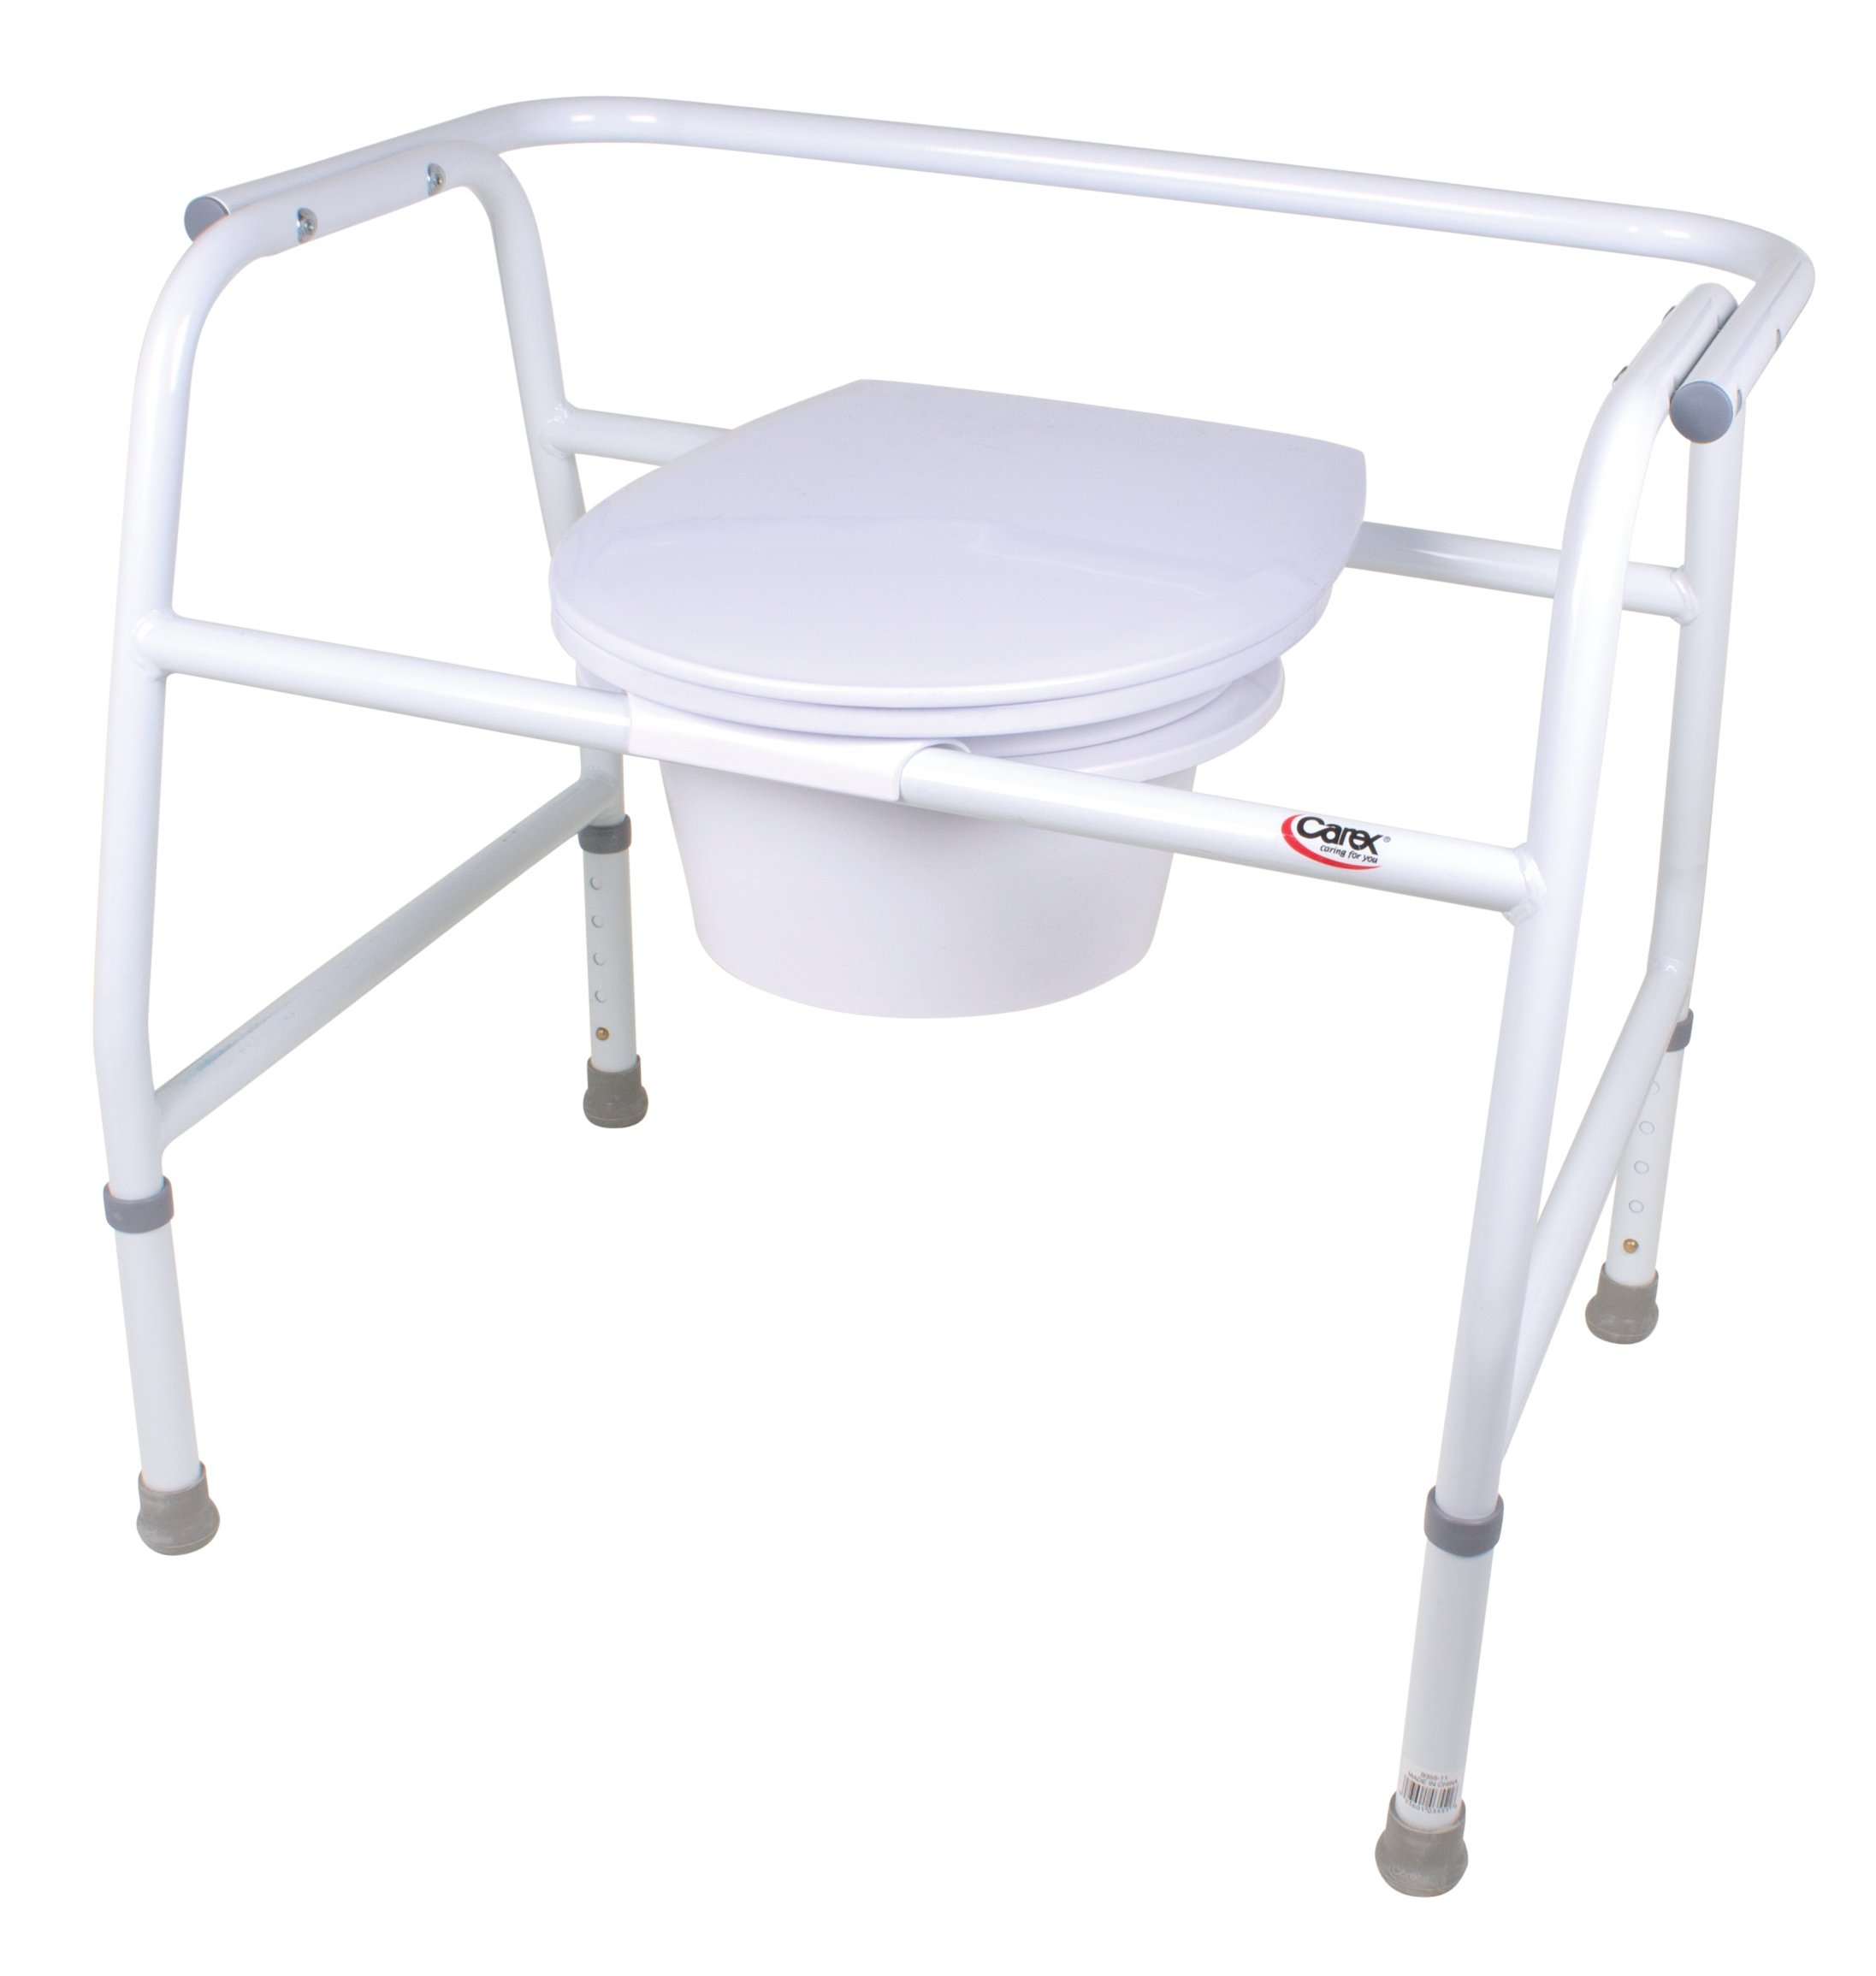 Carex Health Brands Extra Wide Steel Commode